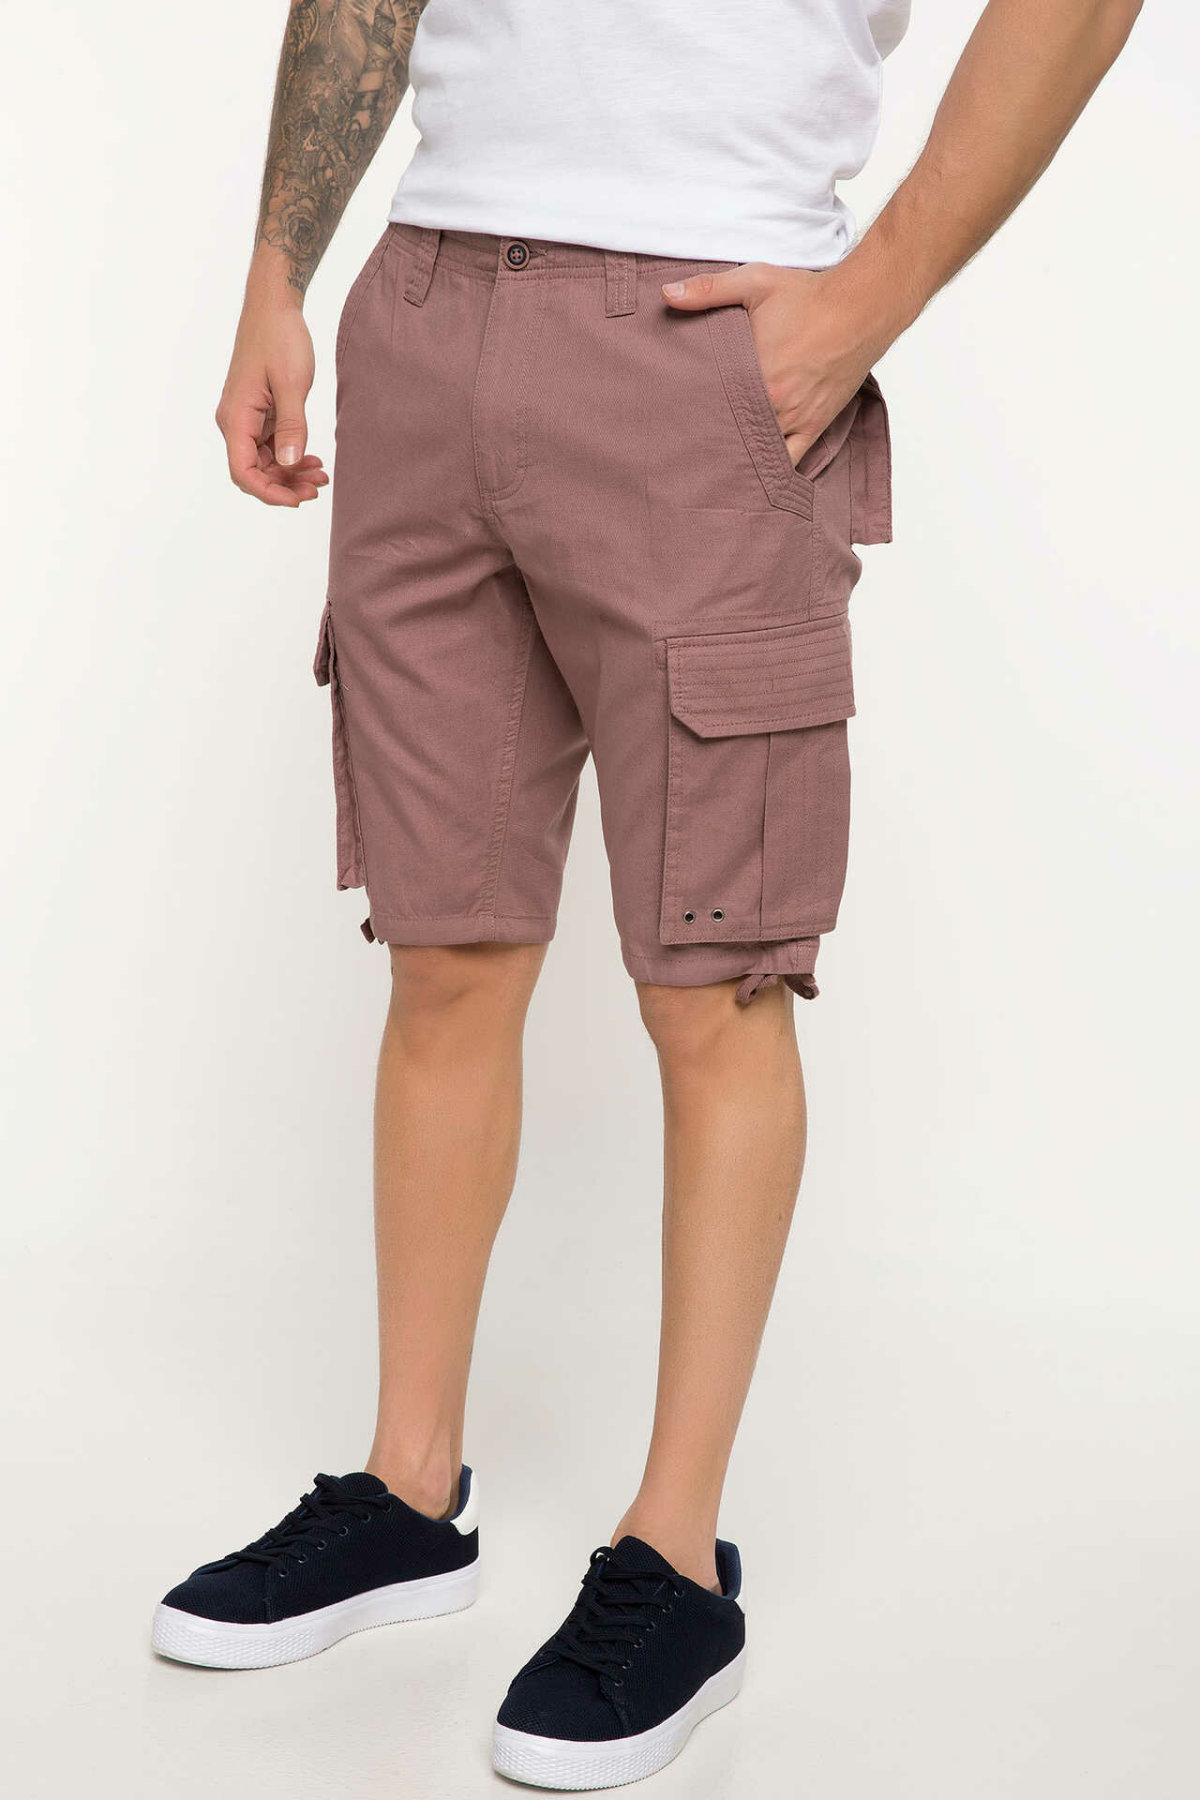 DeFacto Man Summer Pink Color Casual Shorts Men Pockets Decors Bermuda Short Bottoms Male Mid-waist Shorts-I6307AZ18SM